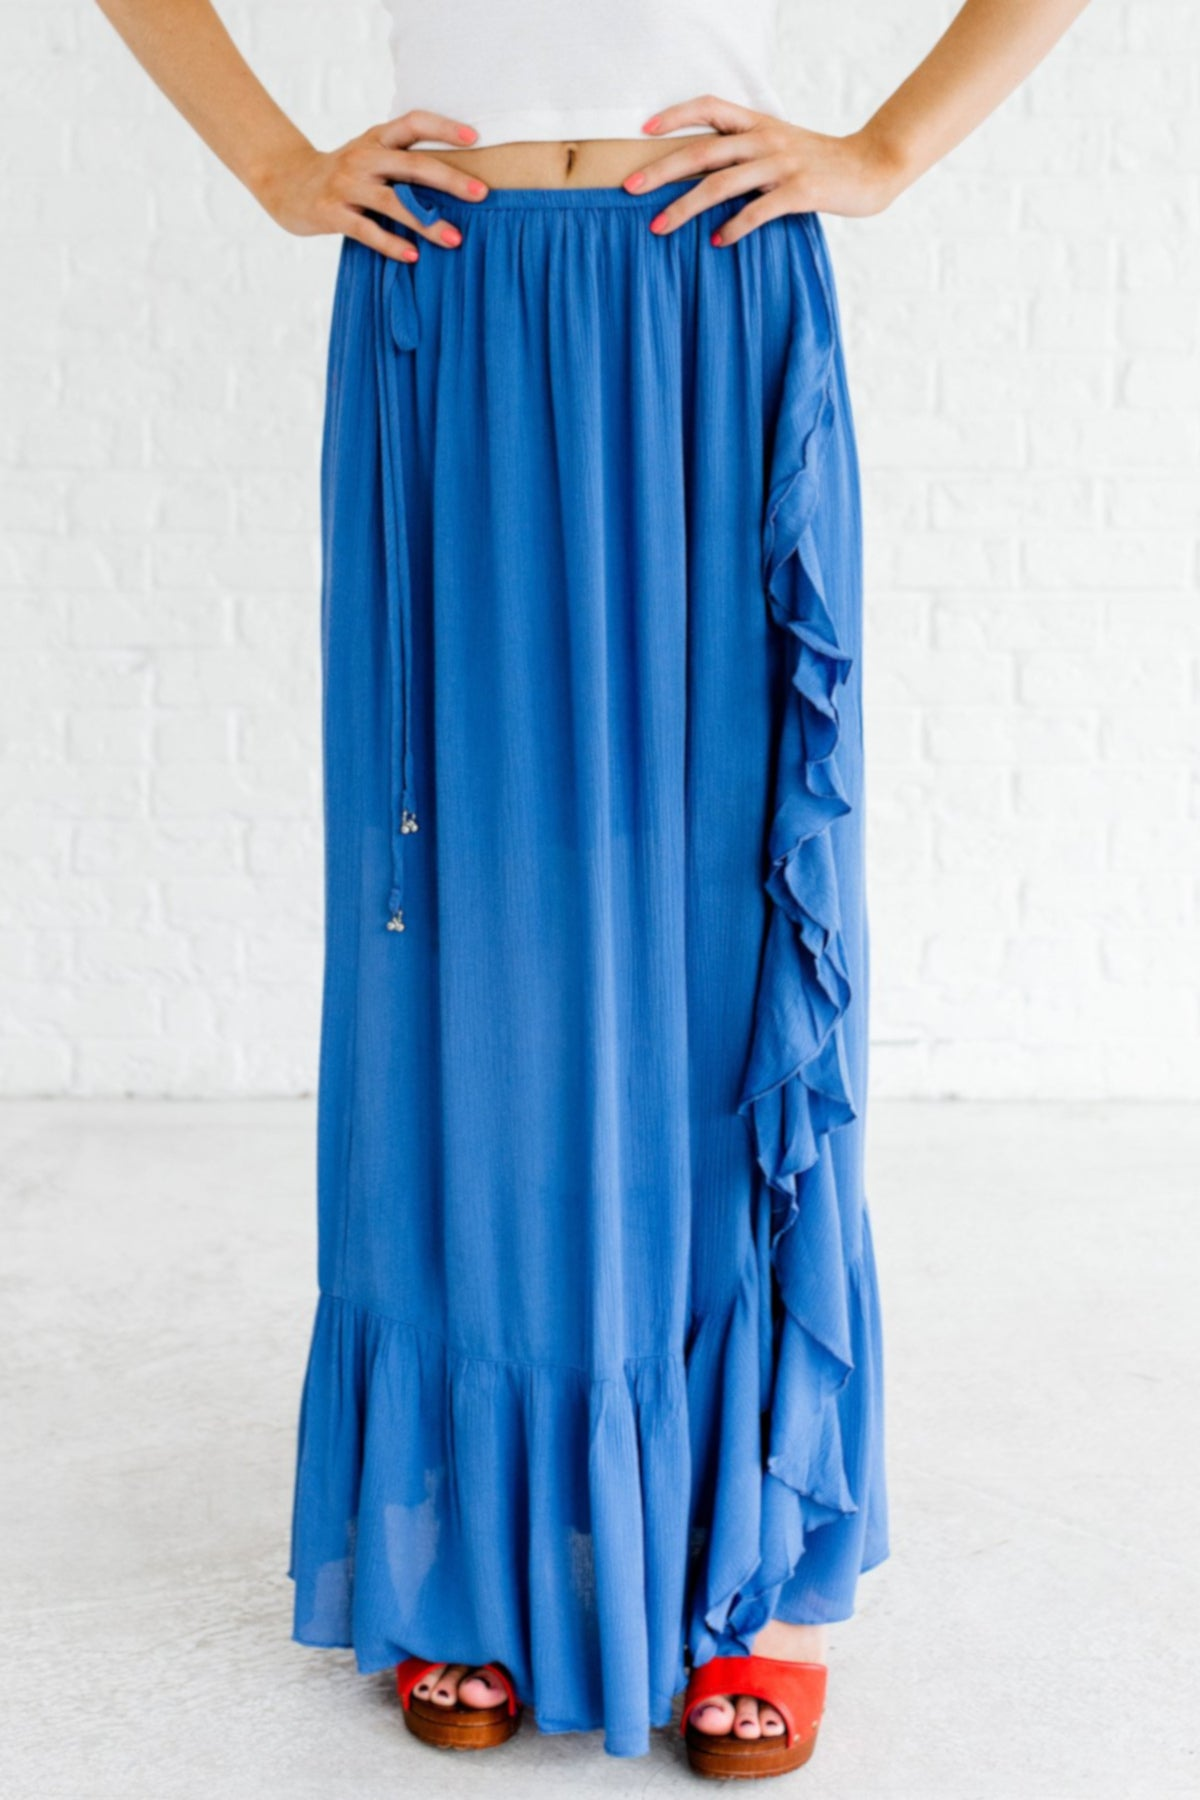 Blue Maxi Length Ruffle Detailed Boutique Skirts for Women